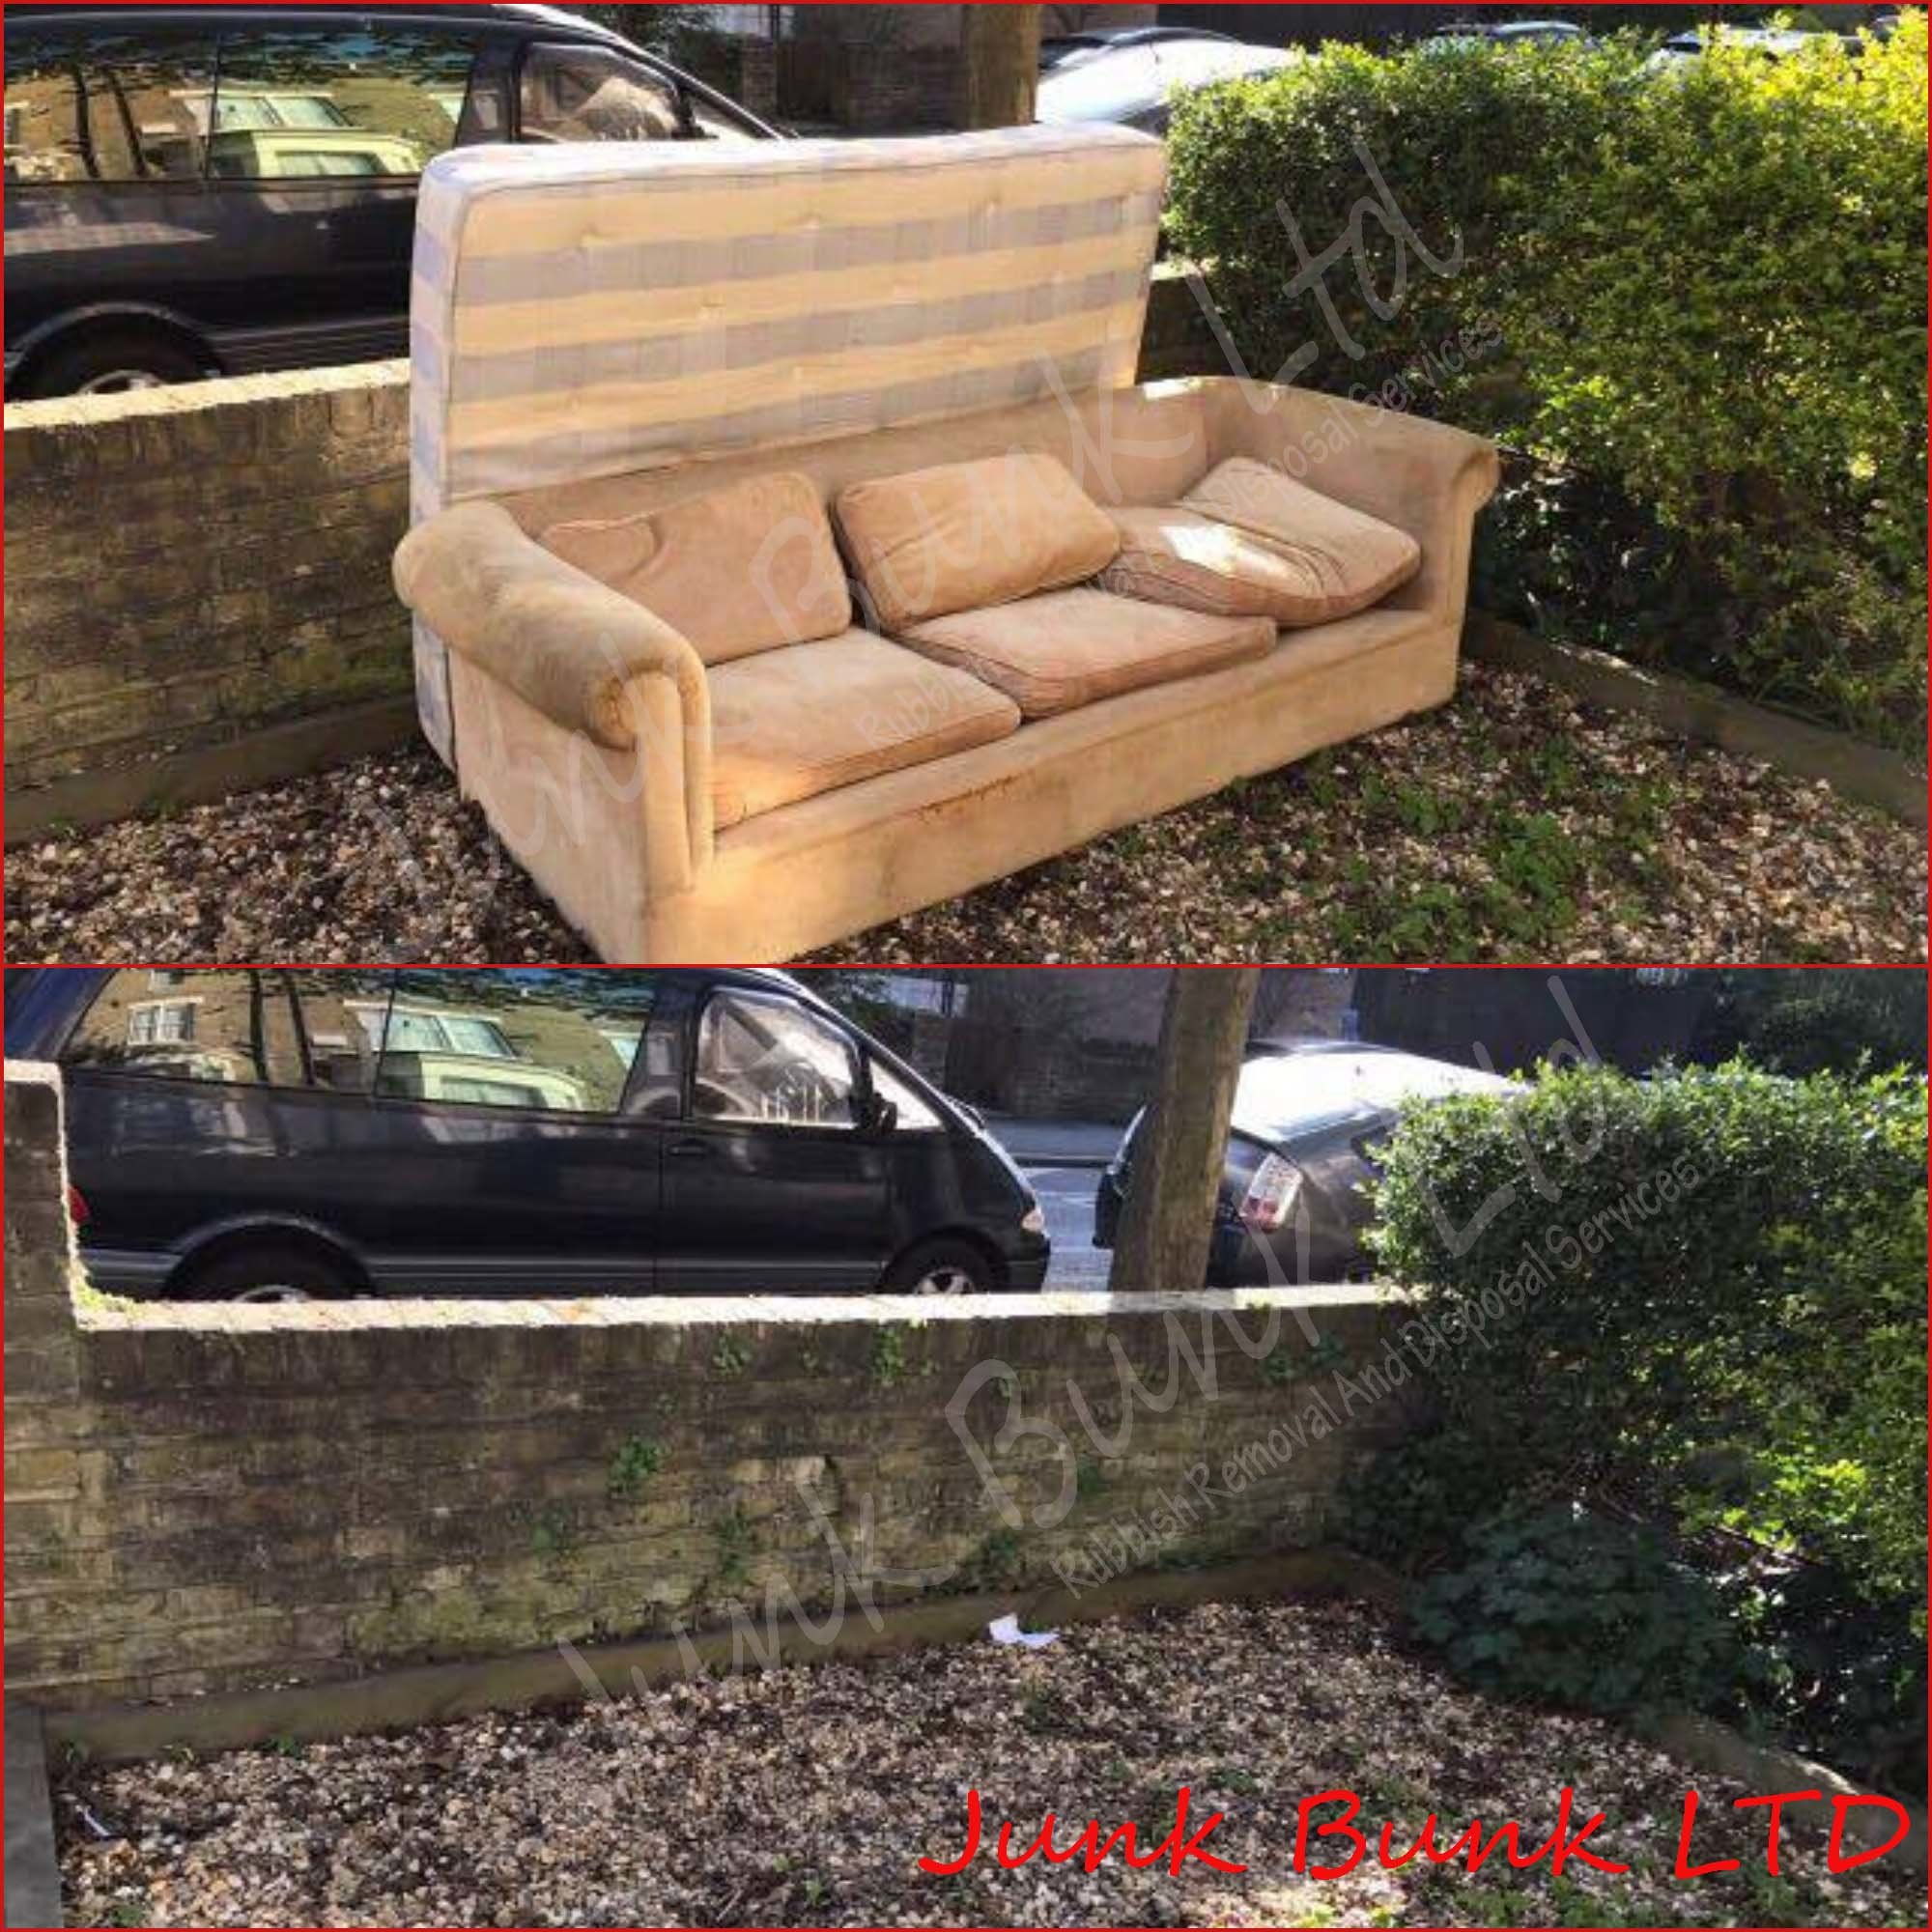 how to recycle my sofa red colour walls same day furniture disposal services in london much your removal and will cost